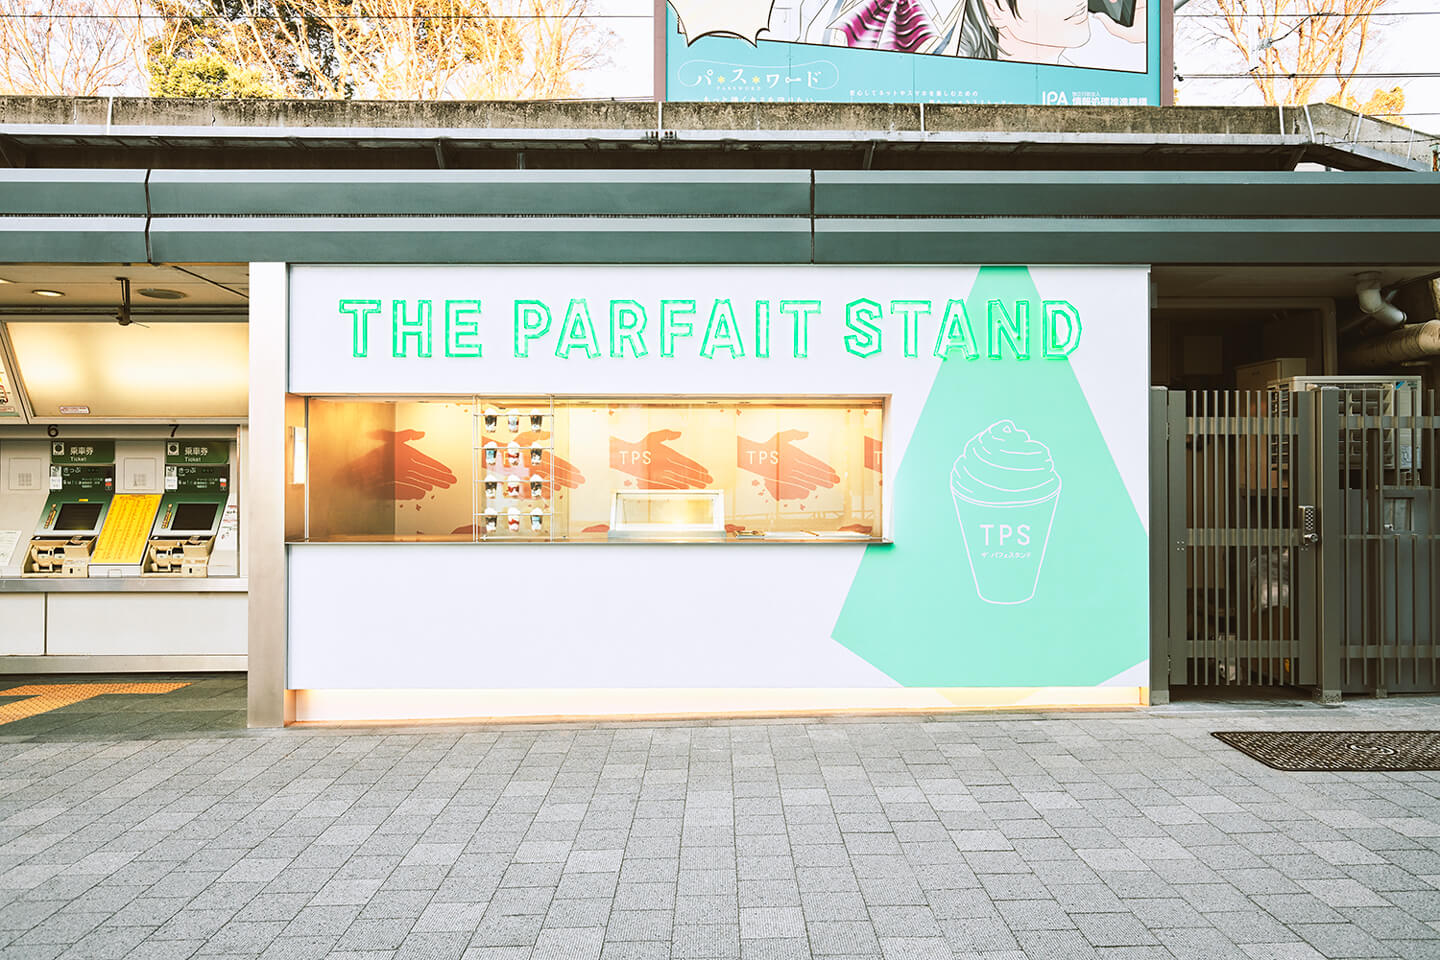 THE PARFAIT STAND